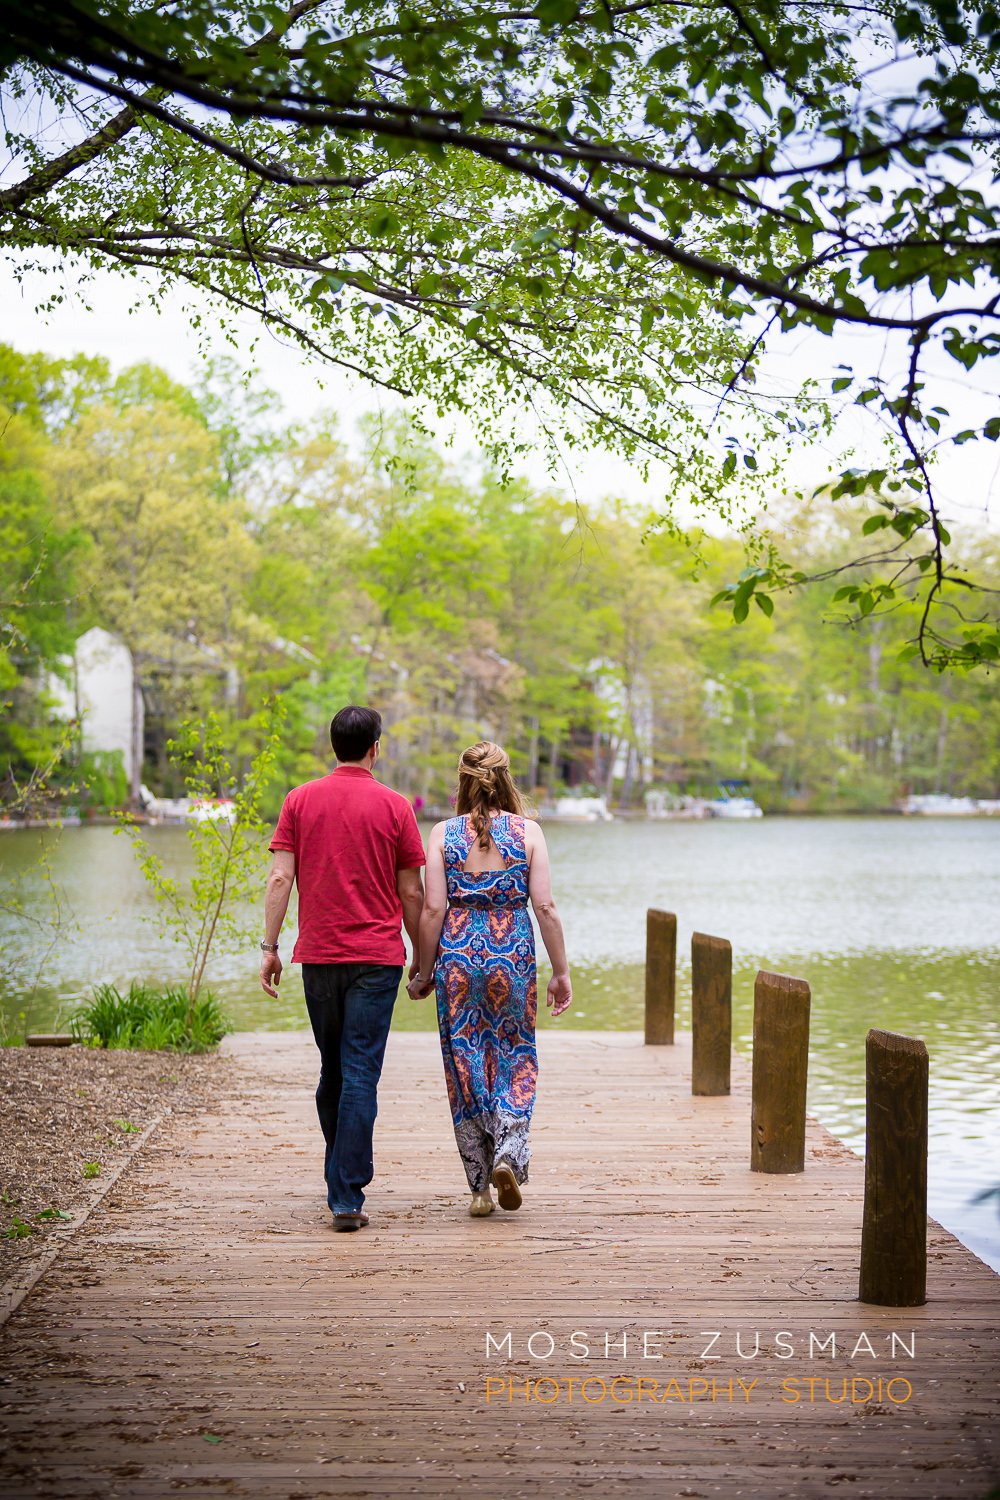 Moshe-Zusman-Engagement-Photo-Shoot-Lake-Anne-Reston-Virginia-Abby-Matt-16.jpg